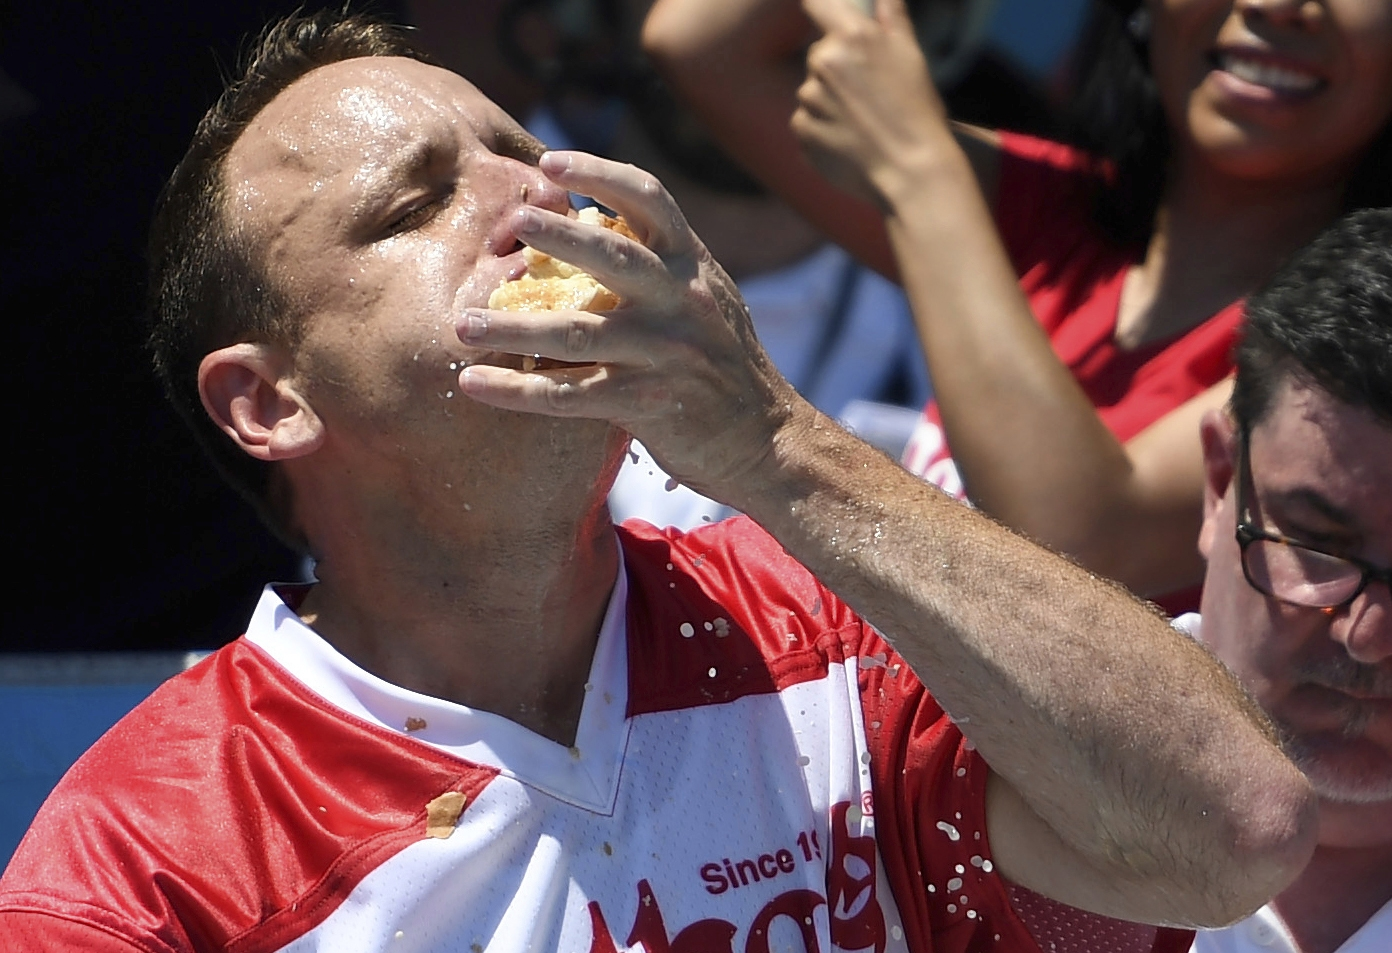 Joey Chestnut stuffs his mouth with hot dogs during the men's competition of Nathan's Famous July Fourth hot dog eating contest, Thursday, July 4, 2019, in New York's Coney Island. (AP Photo/Sarah Stier)